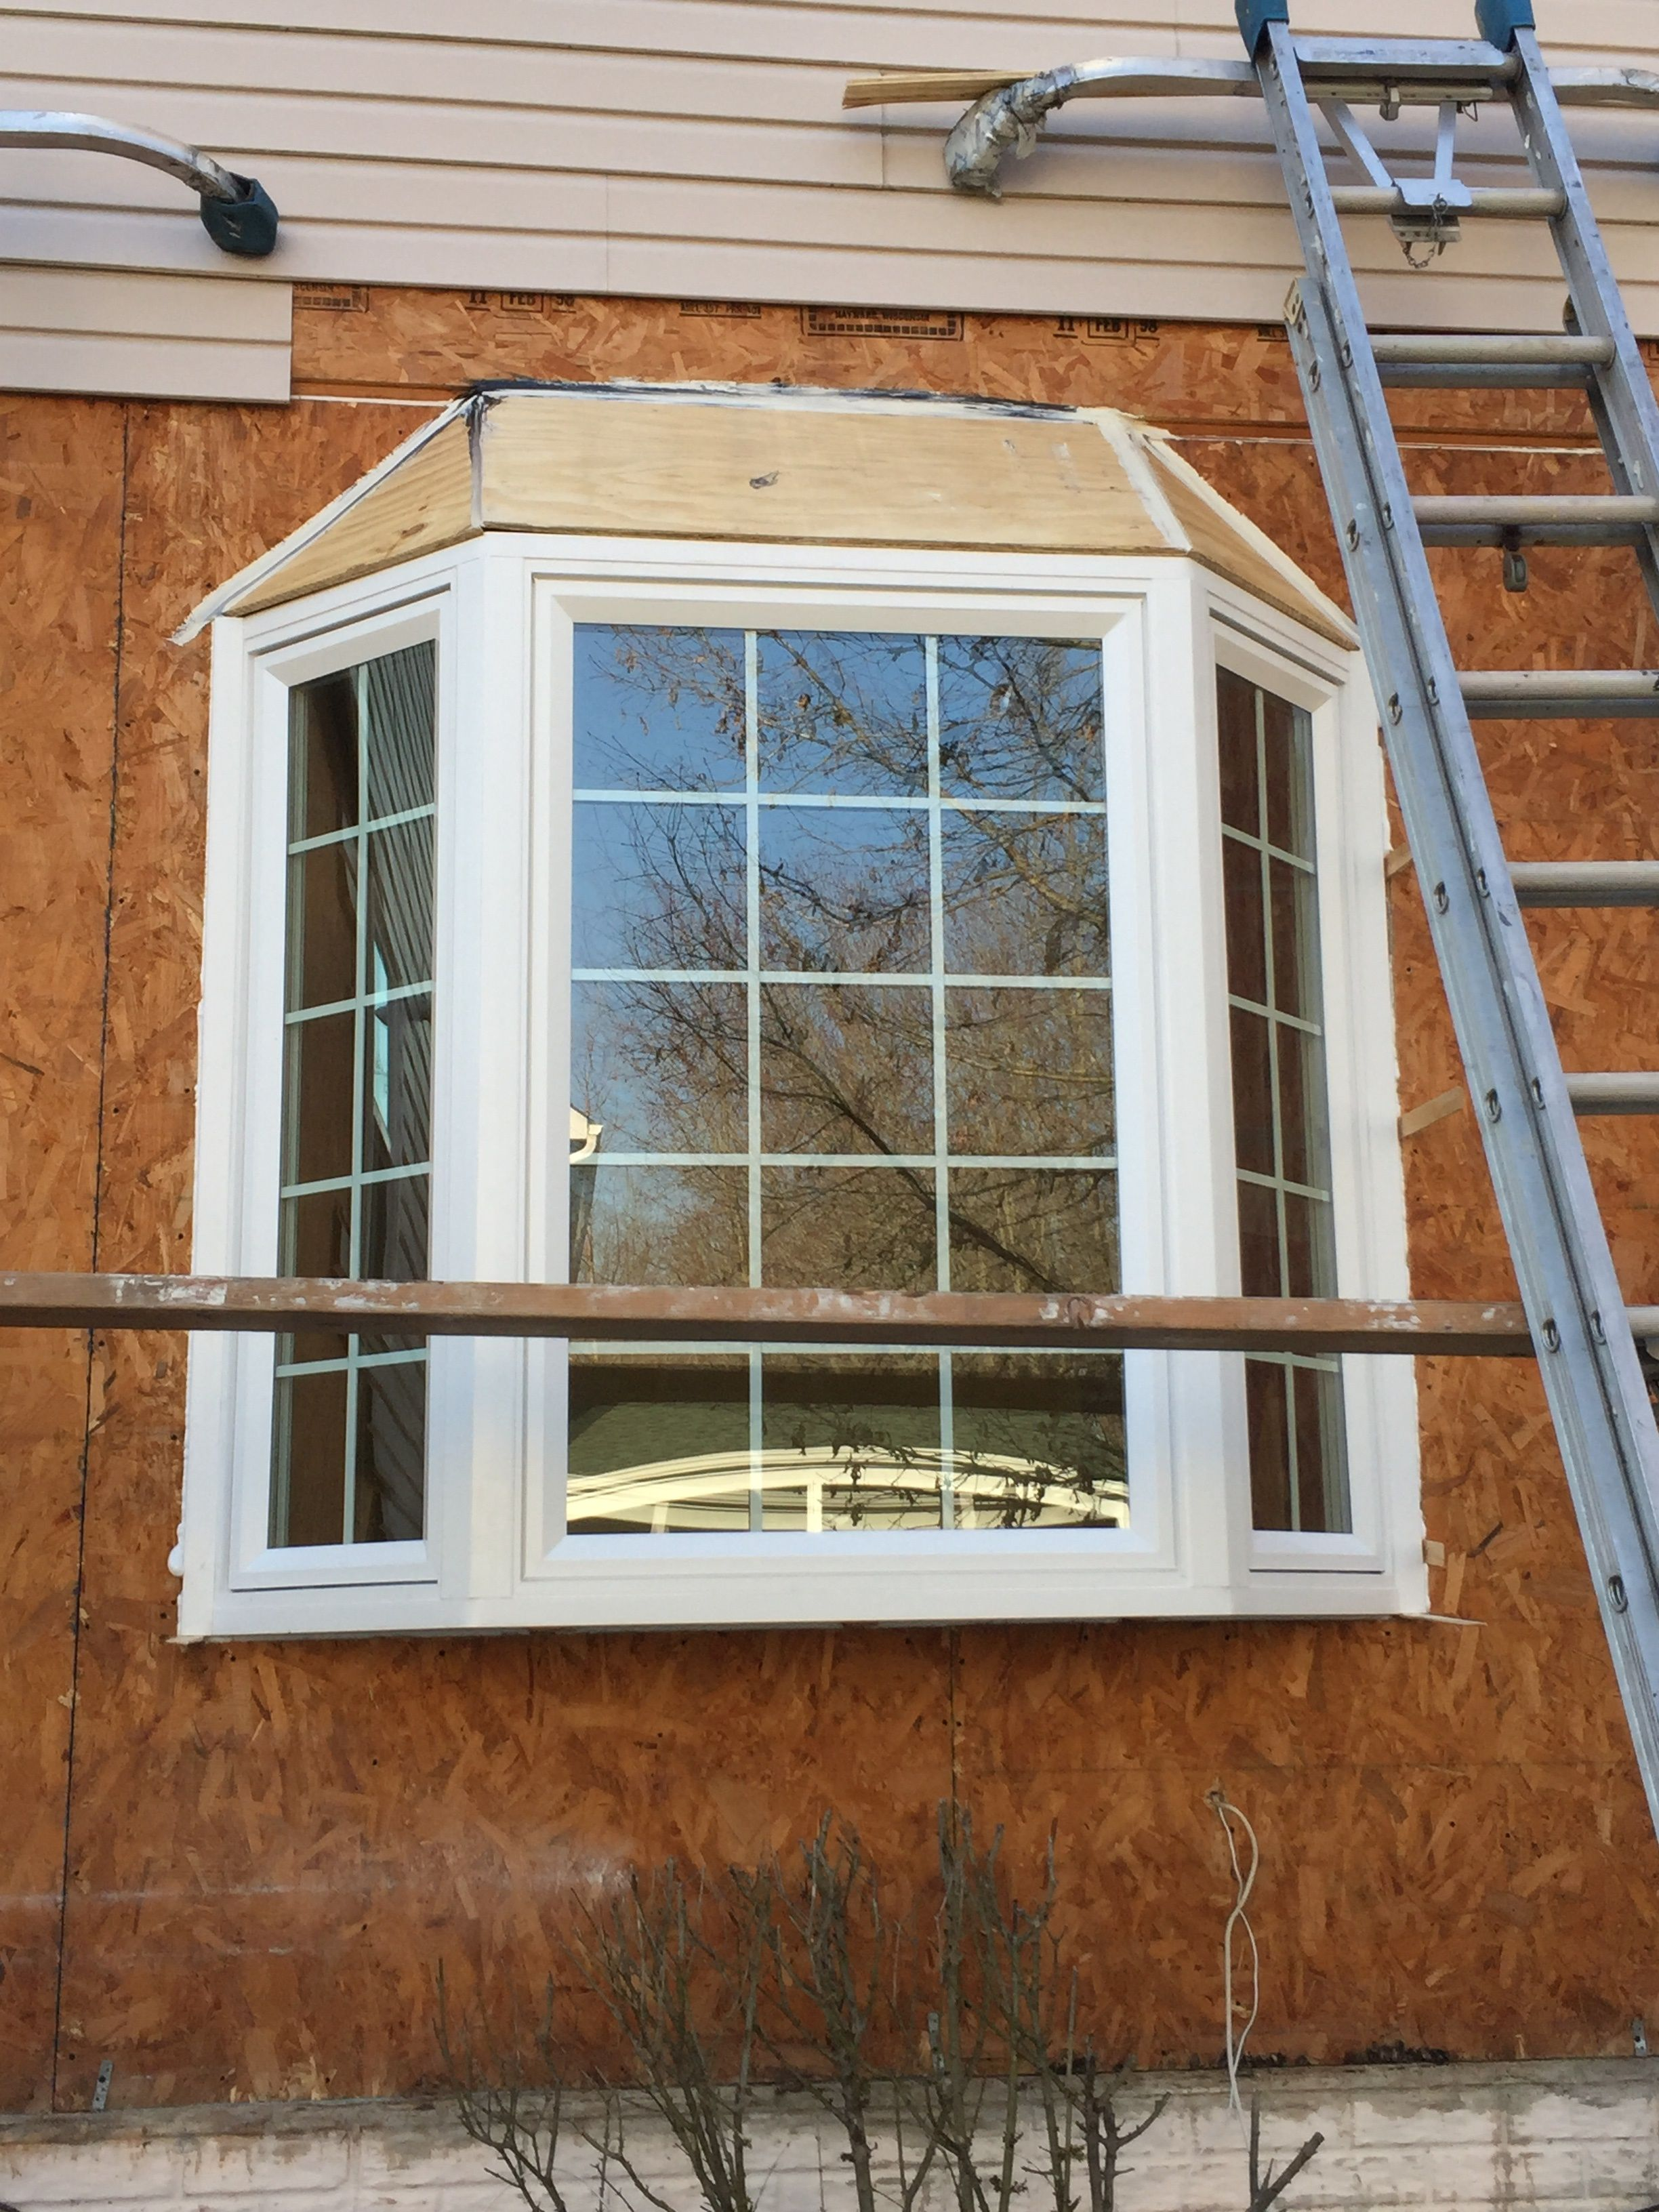 Take a look at some images from a recent job we completed for Energy efficient bay windows